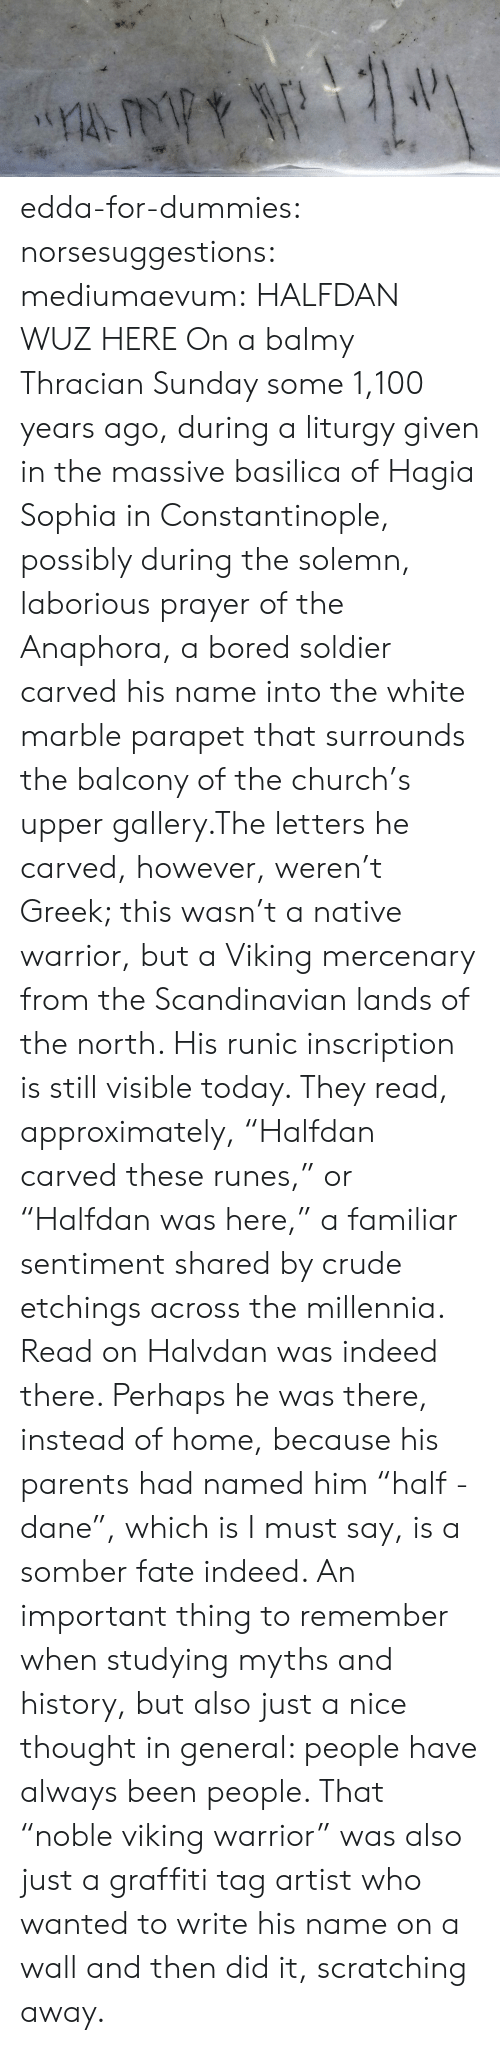 """i must say: edda-for-dummies: norsesuggestions:  mediumaevum:  HALFDAN WUZ HERE On a balmy Thracian Sunday some 1,100 years ago, during a liturgy given in the massive basilica of Hagia Sophia in Constantinople, possibly during the solemn, laborious prayer of the Anaphora, a bored soldier carved his name into the white marble parapet that surrounds the balcony of the church's upper gallery.The letters he carved, however, weren't Greek; this wasn't a native warrior, but a Viking mercenary from the Scandinavian lands of the north. His runic inscription is still visible today. They read, approximately, """"Halfdan carved these runes,"""" or """"Halfdan was here,"""" a familiar sentiment shared by crude etchings across the millennia. Read on  Halvdan was indeed there. Perhaps he was there, instead of home, because his parents had named him """"half - dane"""", which is I must say, is a somber fate indeed.   An important thing to remember when studying myths and history, but also just a nice thought in general: people have always been people. That """"noble viking warrior"""" was also just a graffiti tag artist who wanted to write his name on a wall and then did it, scratching away."""